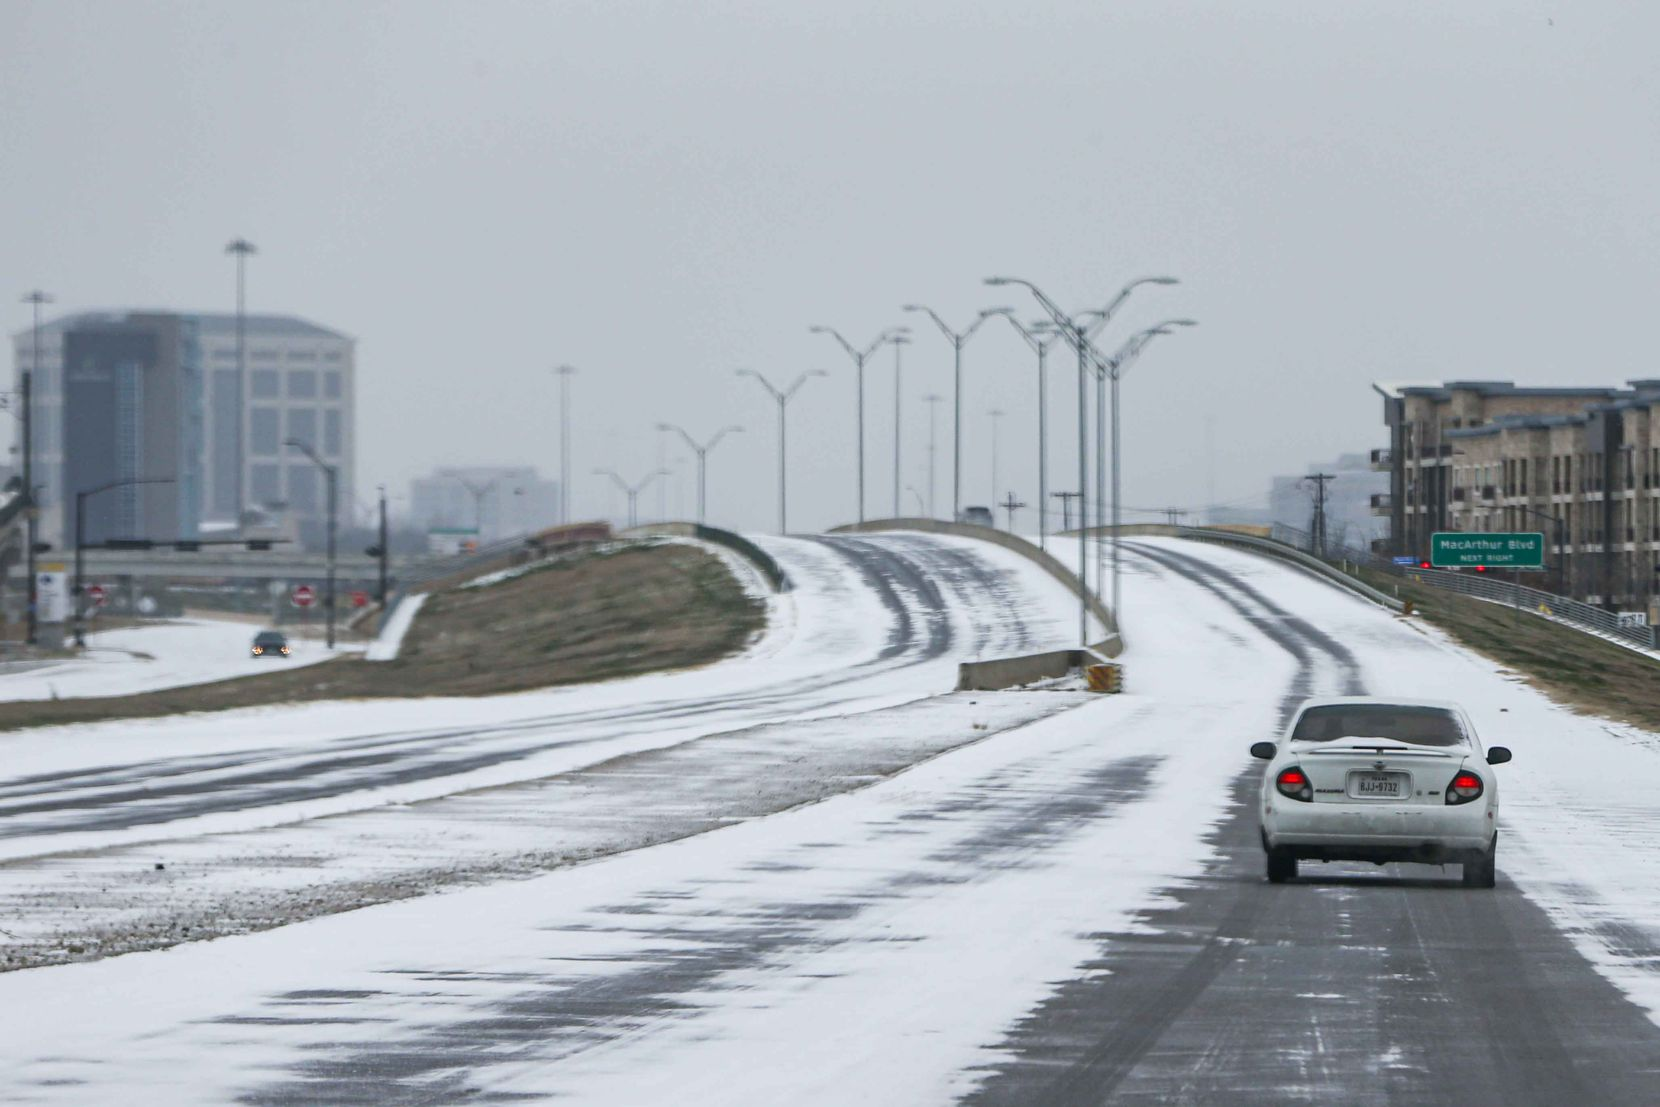 Light traffic on TX-348 Spur near MacArthur Blvd as winter flurries arrive in Irving on Sunday, February 14, 2021 ahead of major snowstorm.